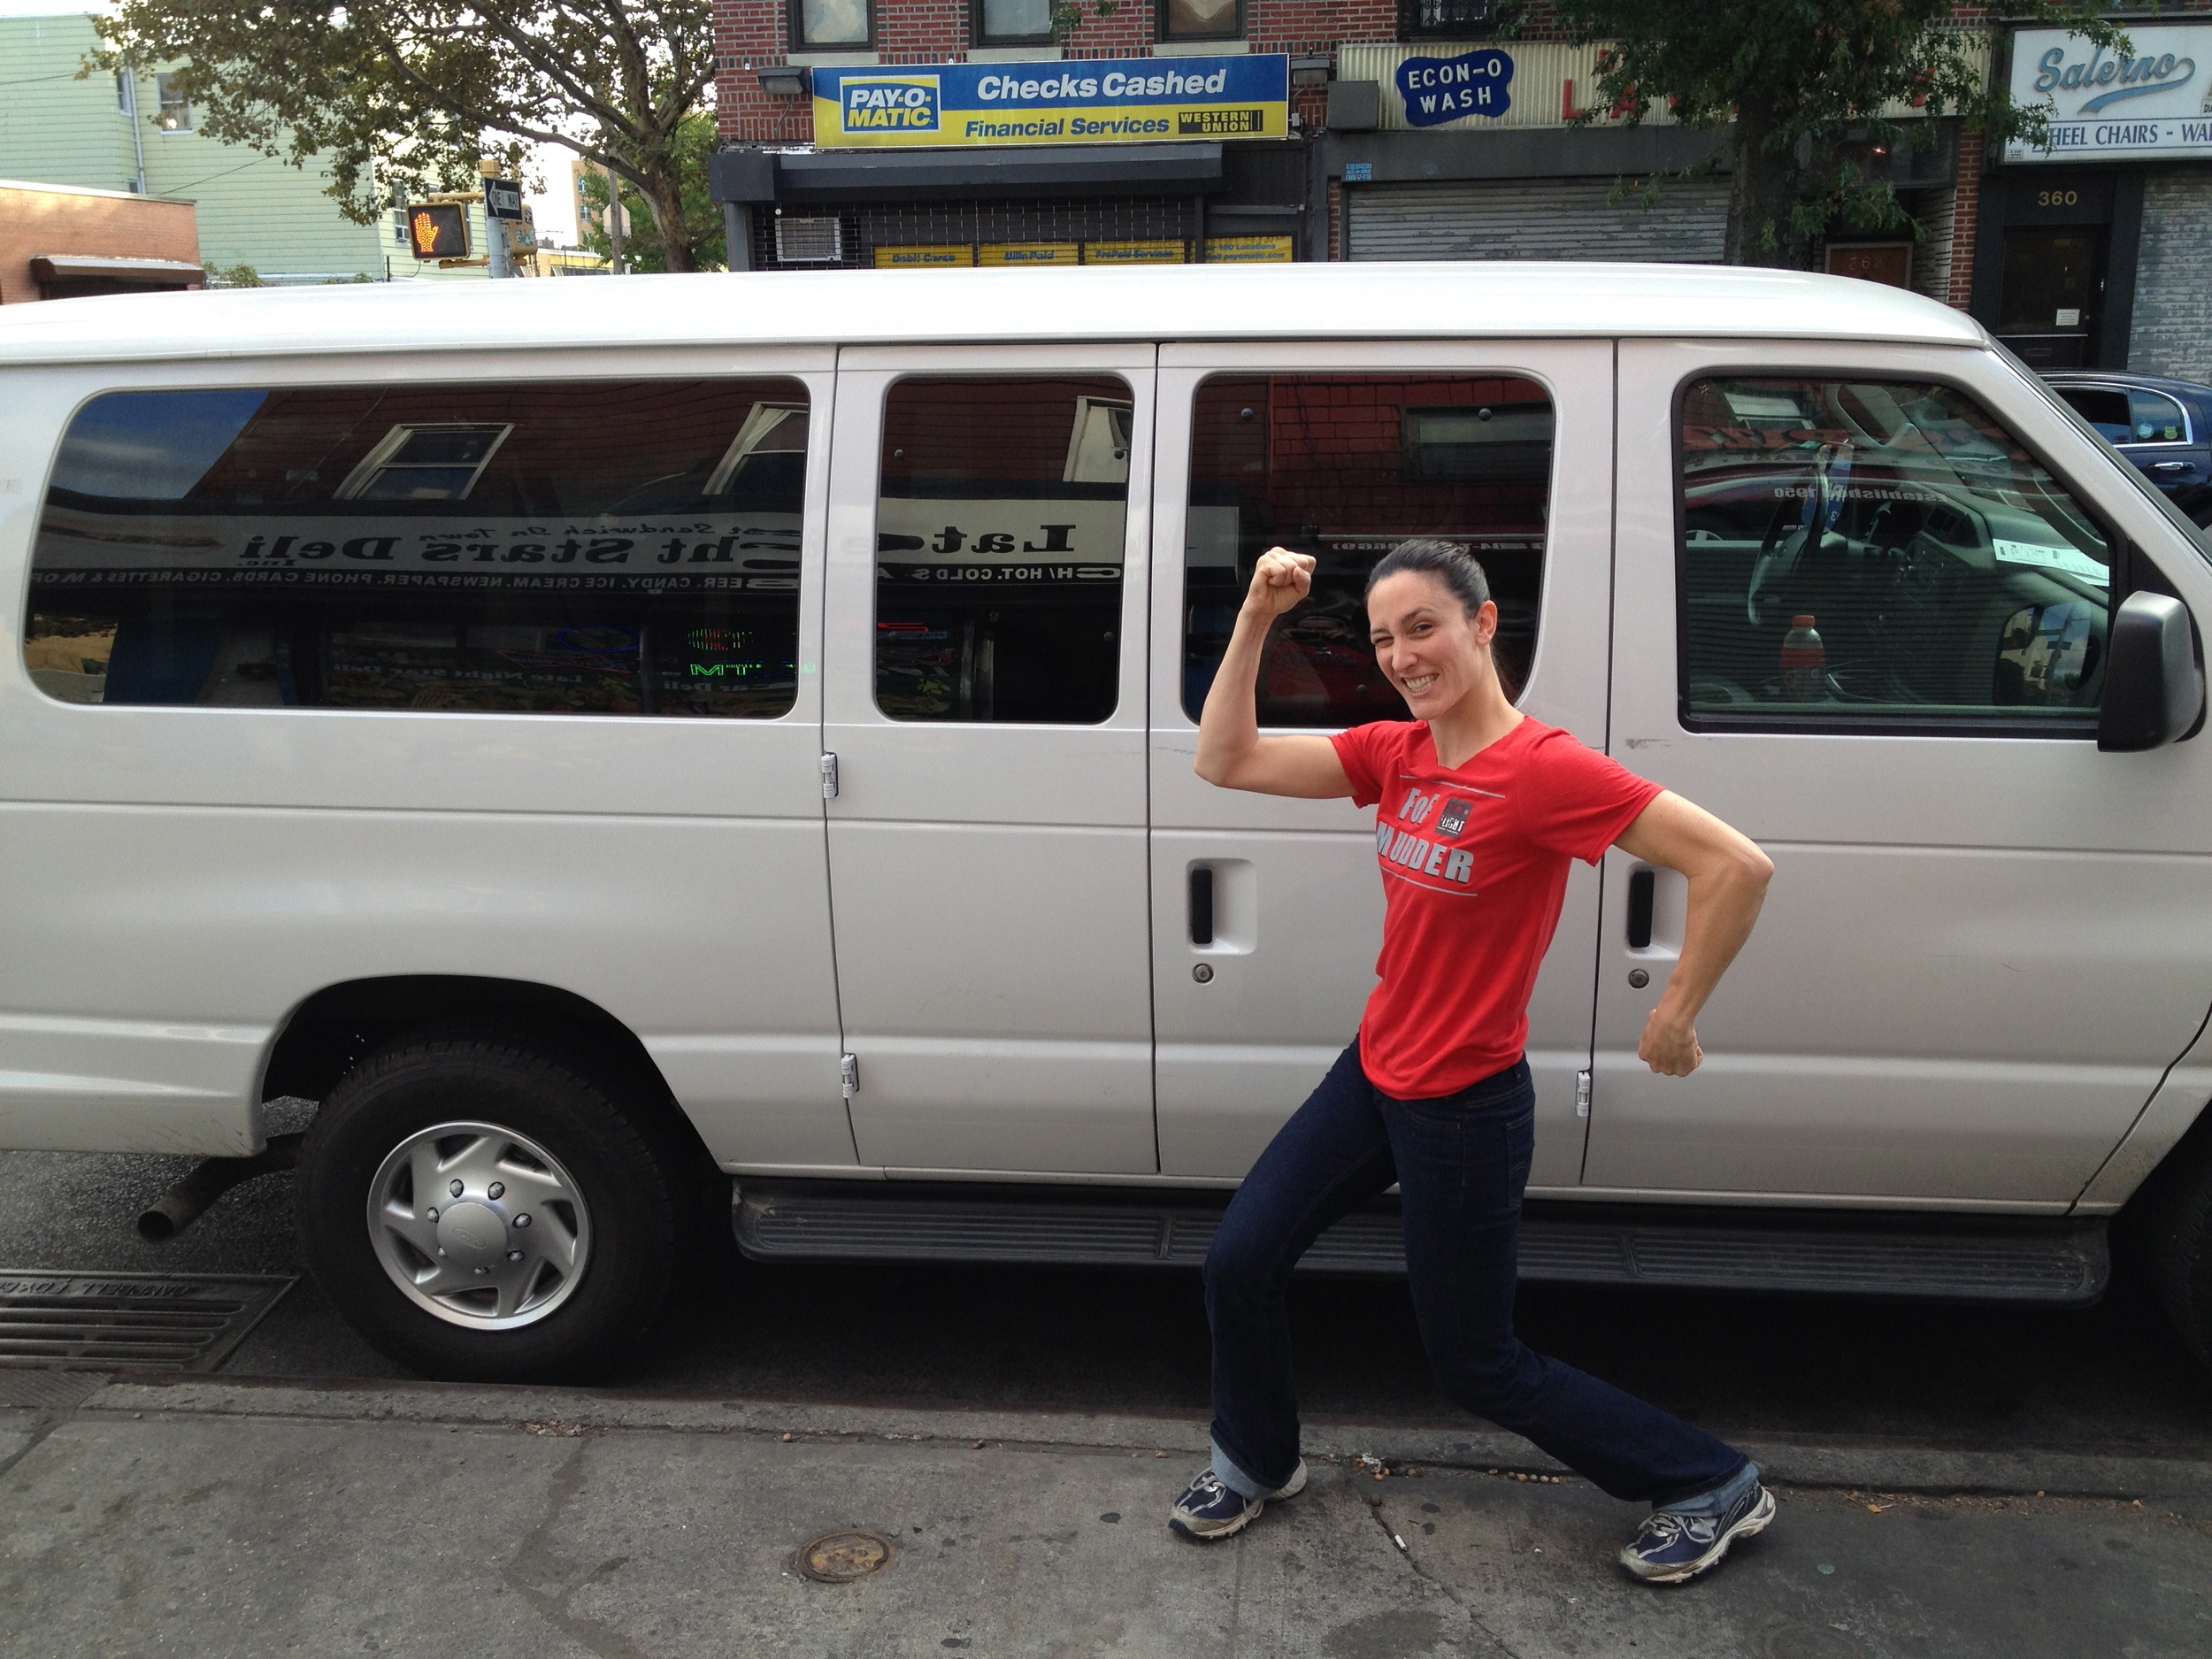 Our Chariot!